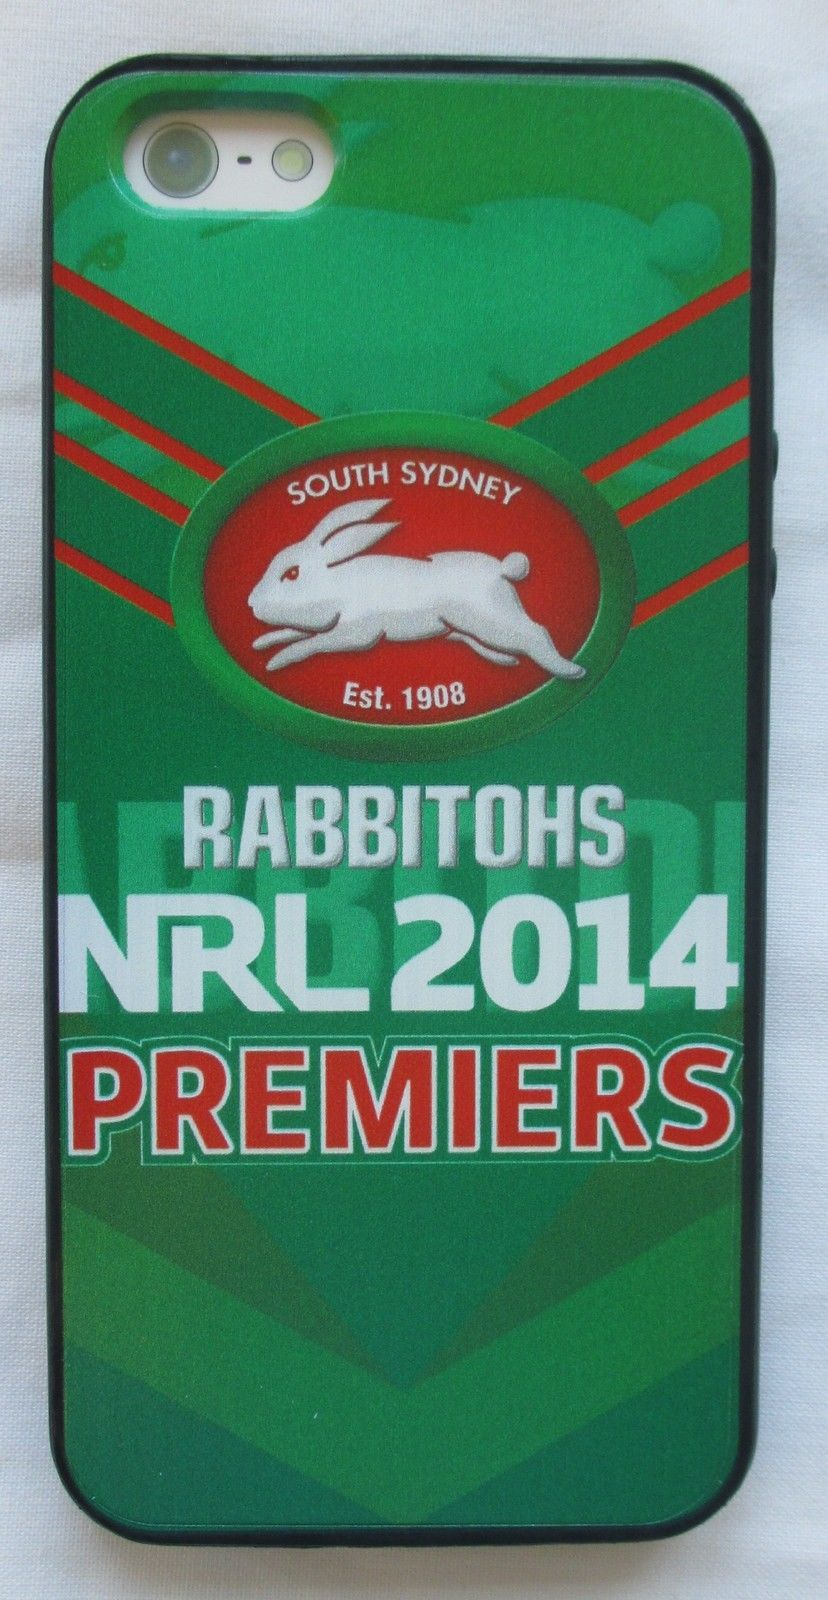 10 Aud South Sydney Rabbitohs 2014 Premiers Nrl Iphone 5 Soft Gel Phone Cover Case Ebay Lifestyle With Images Phone Case Cover Case Cover Phone Covers